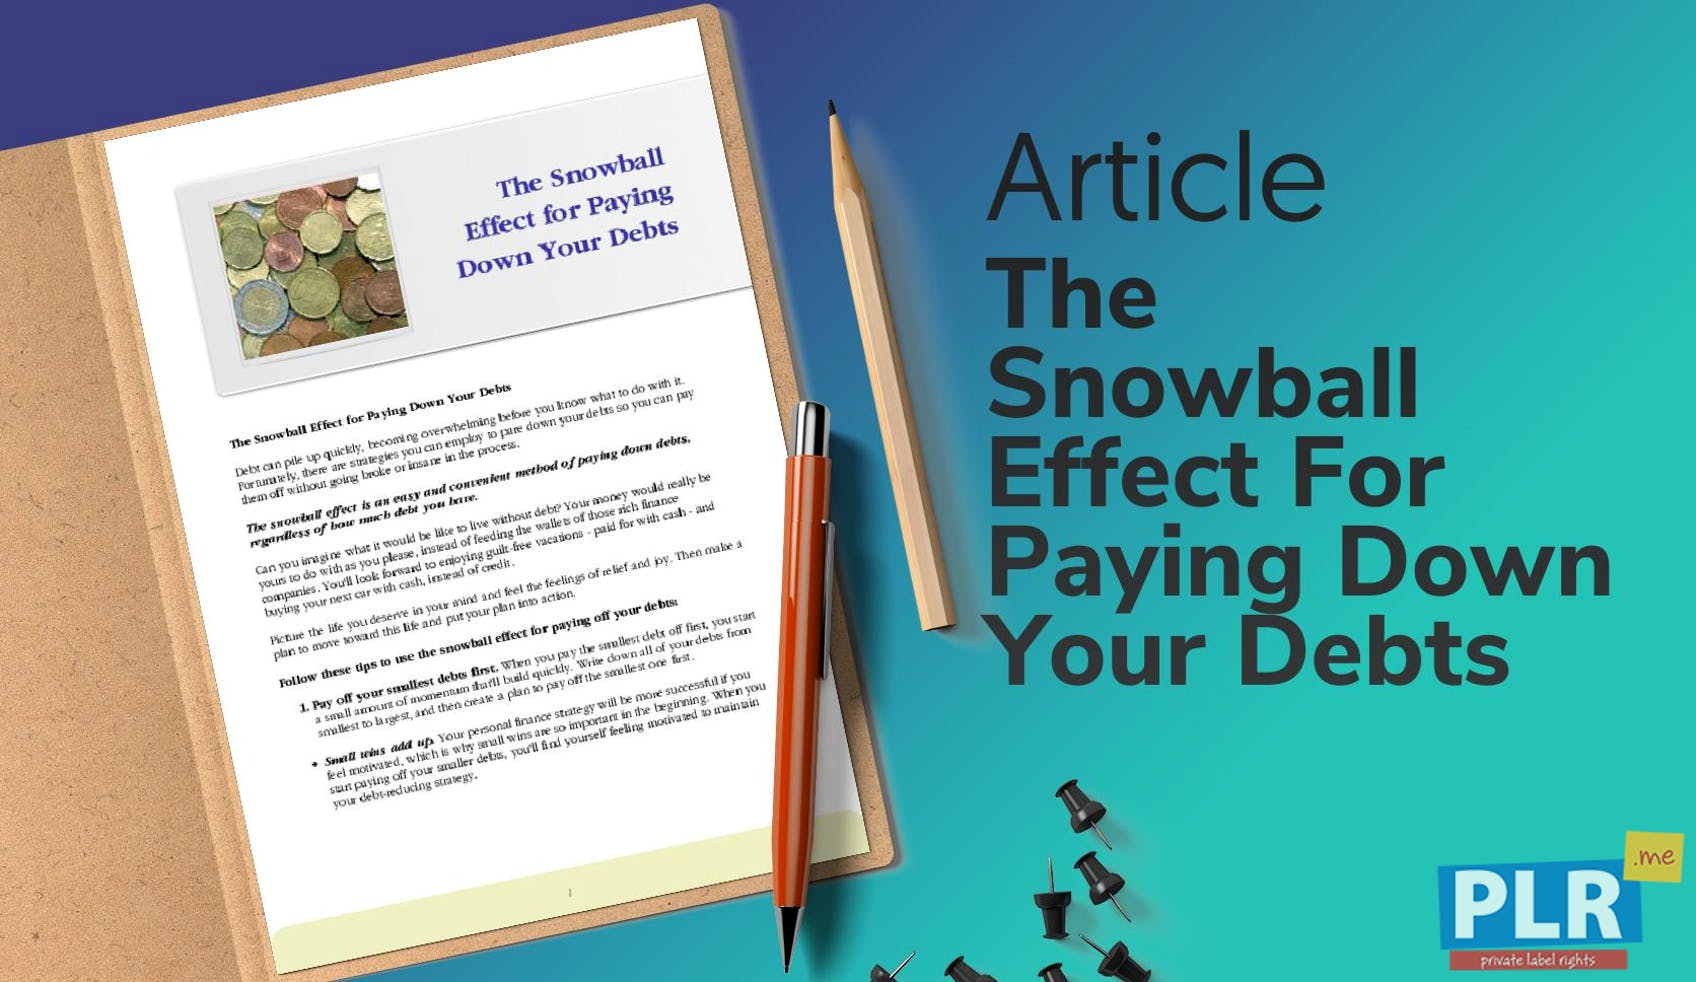 The Snowball Effect For Paying Down Your Debts